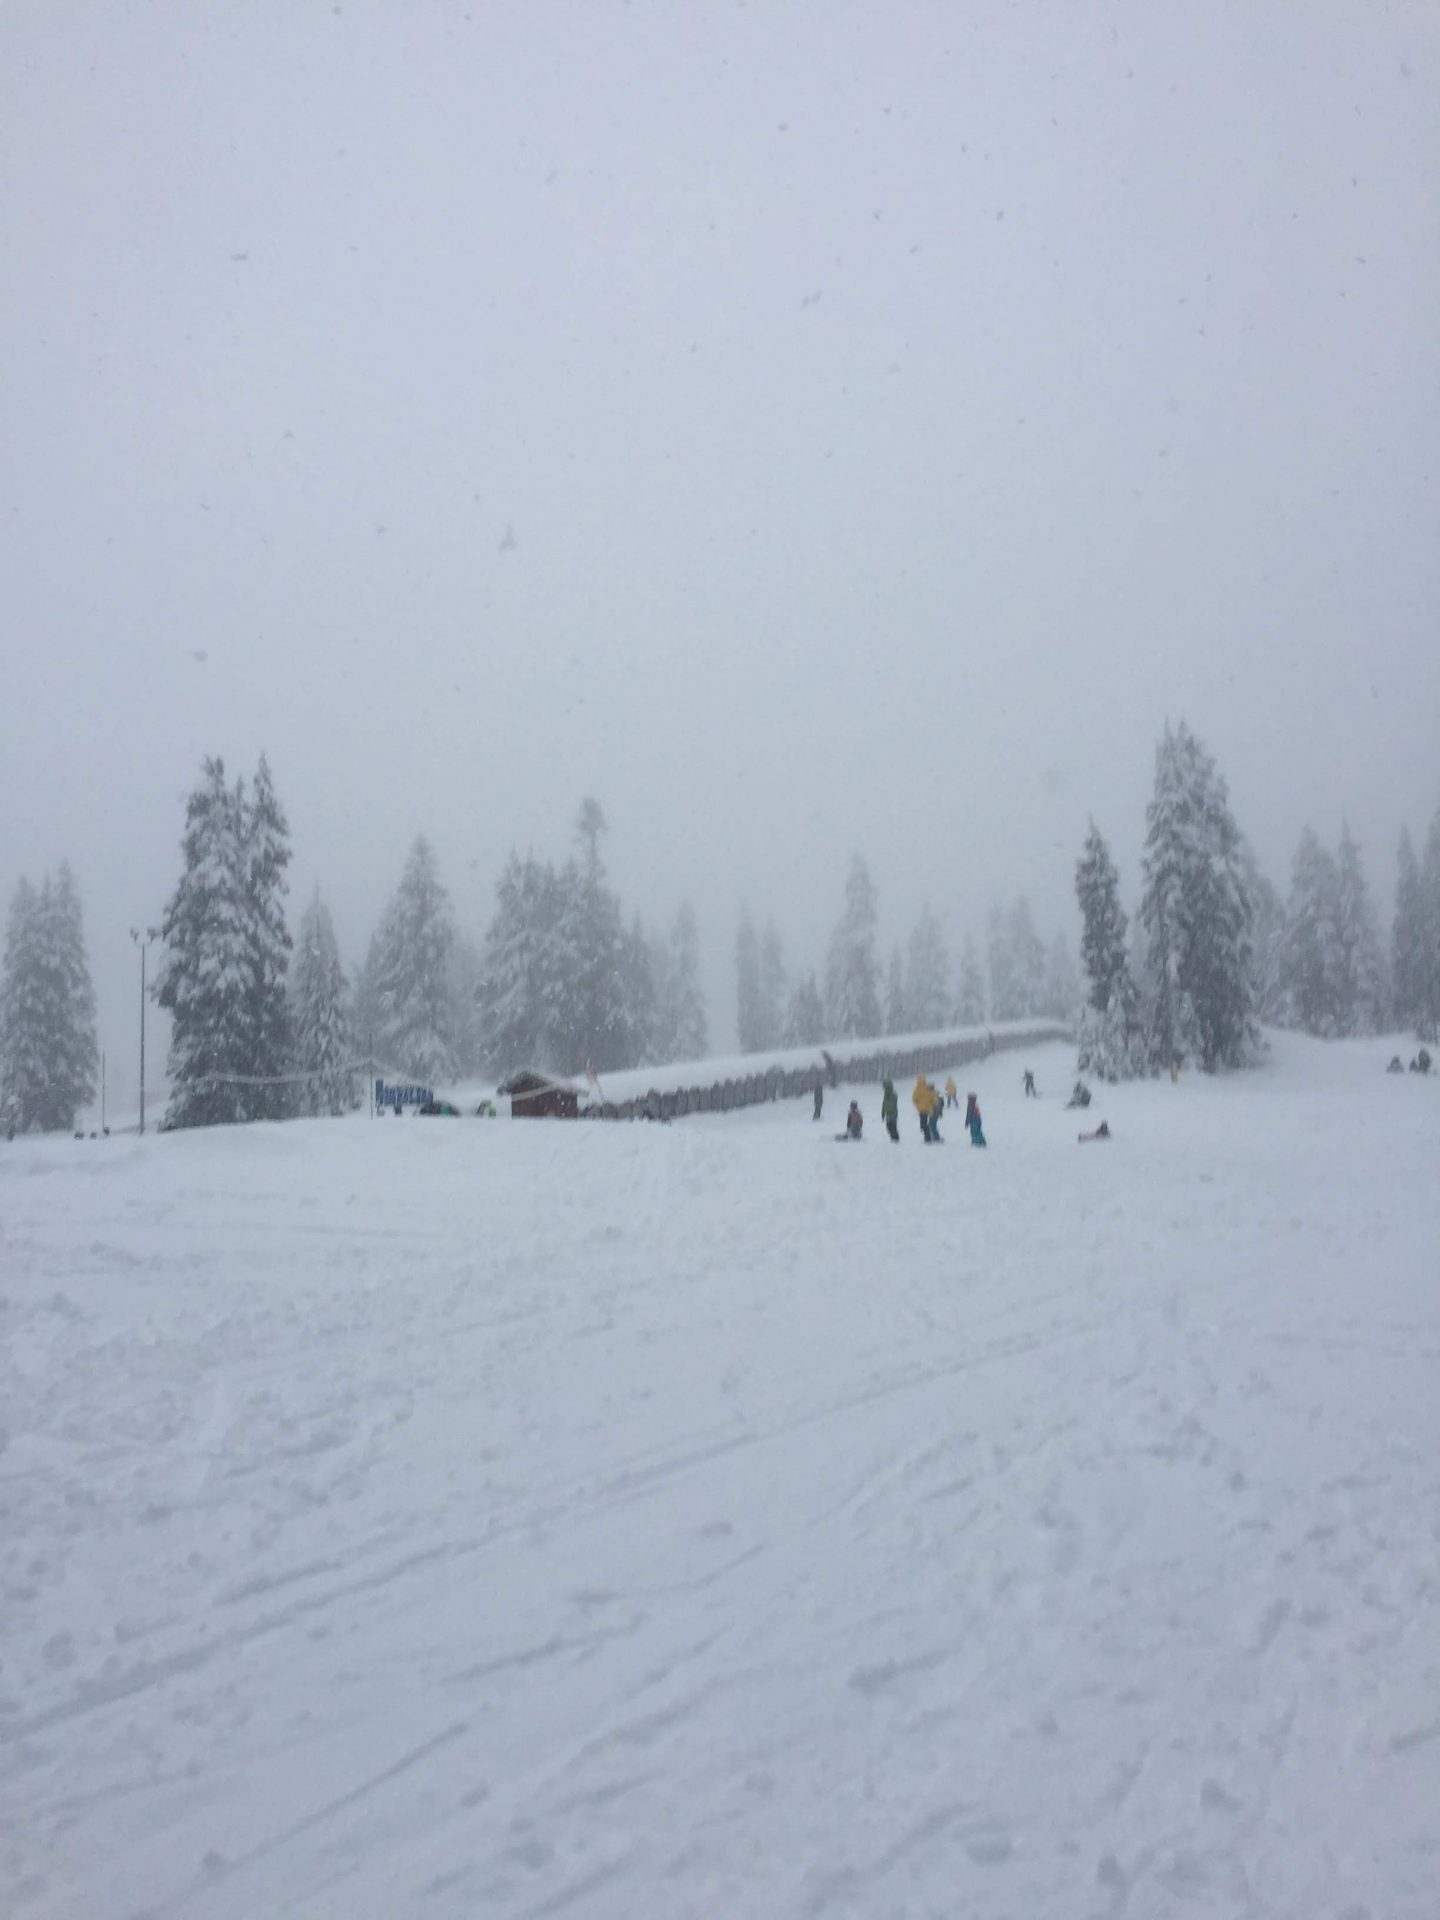 A winter wonderland on a Vancouver mountain